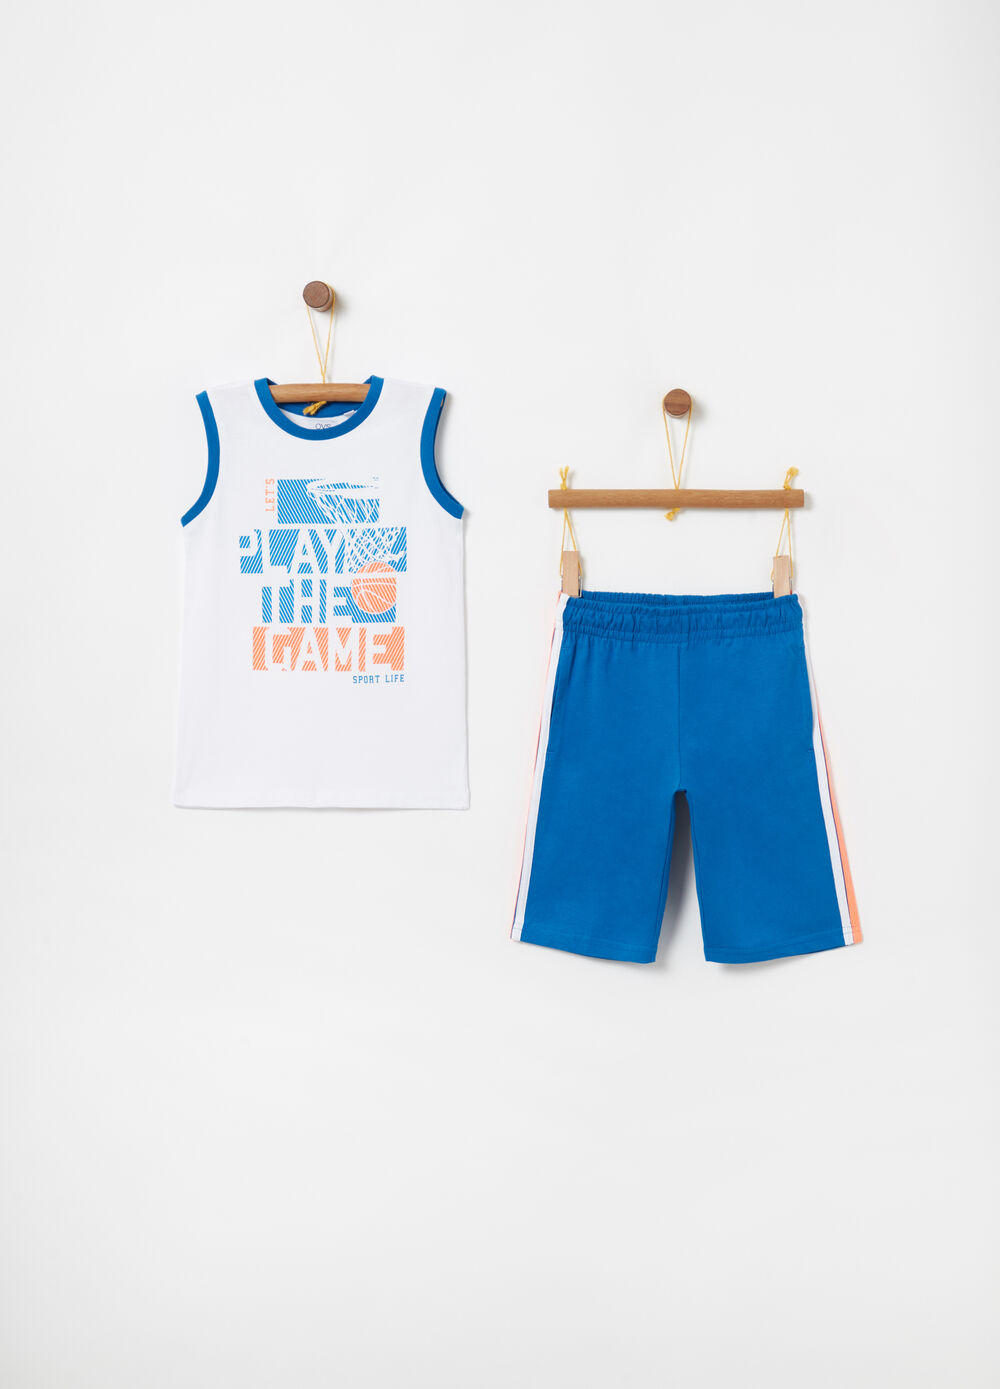 Basketball jogging set with vest and shorts